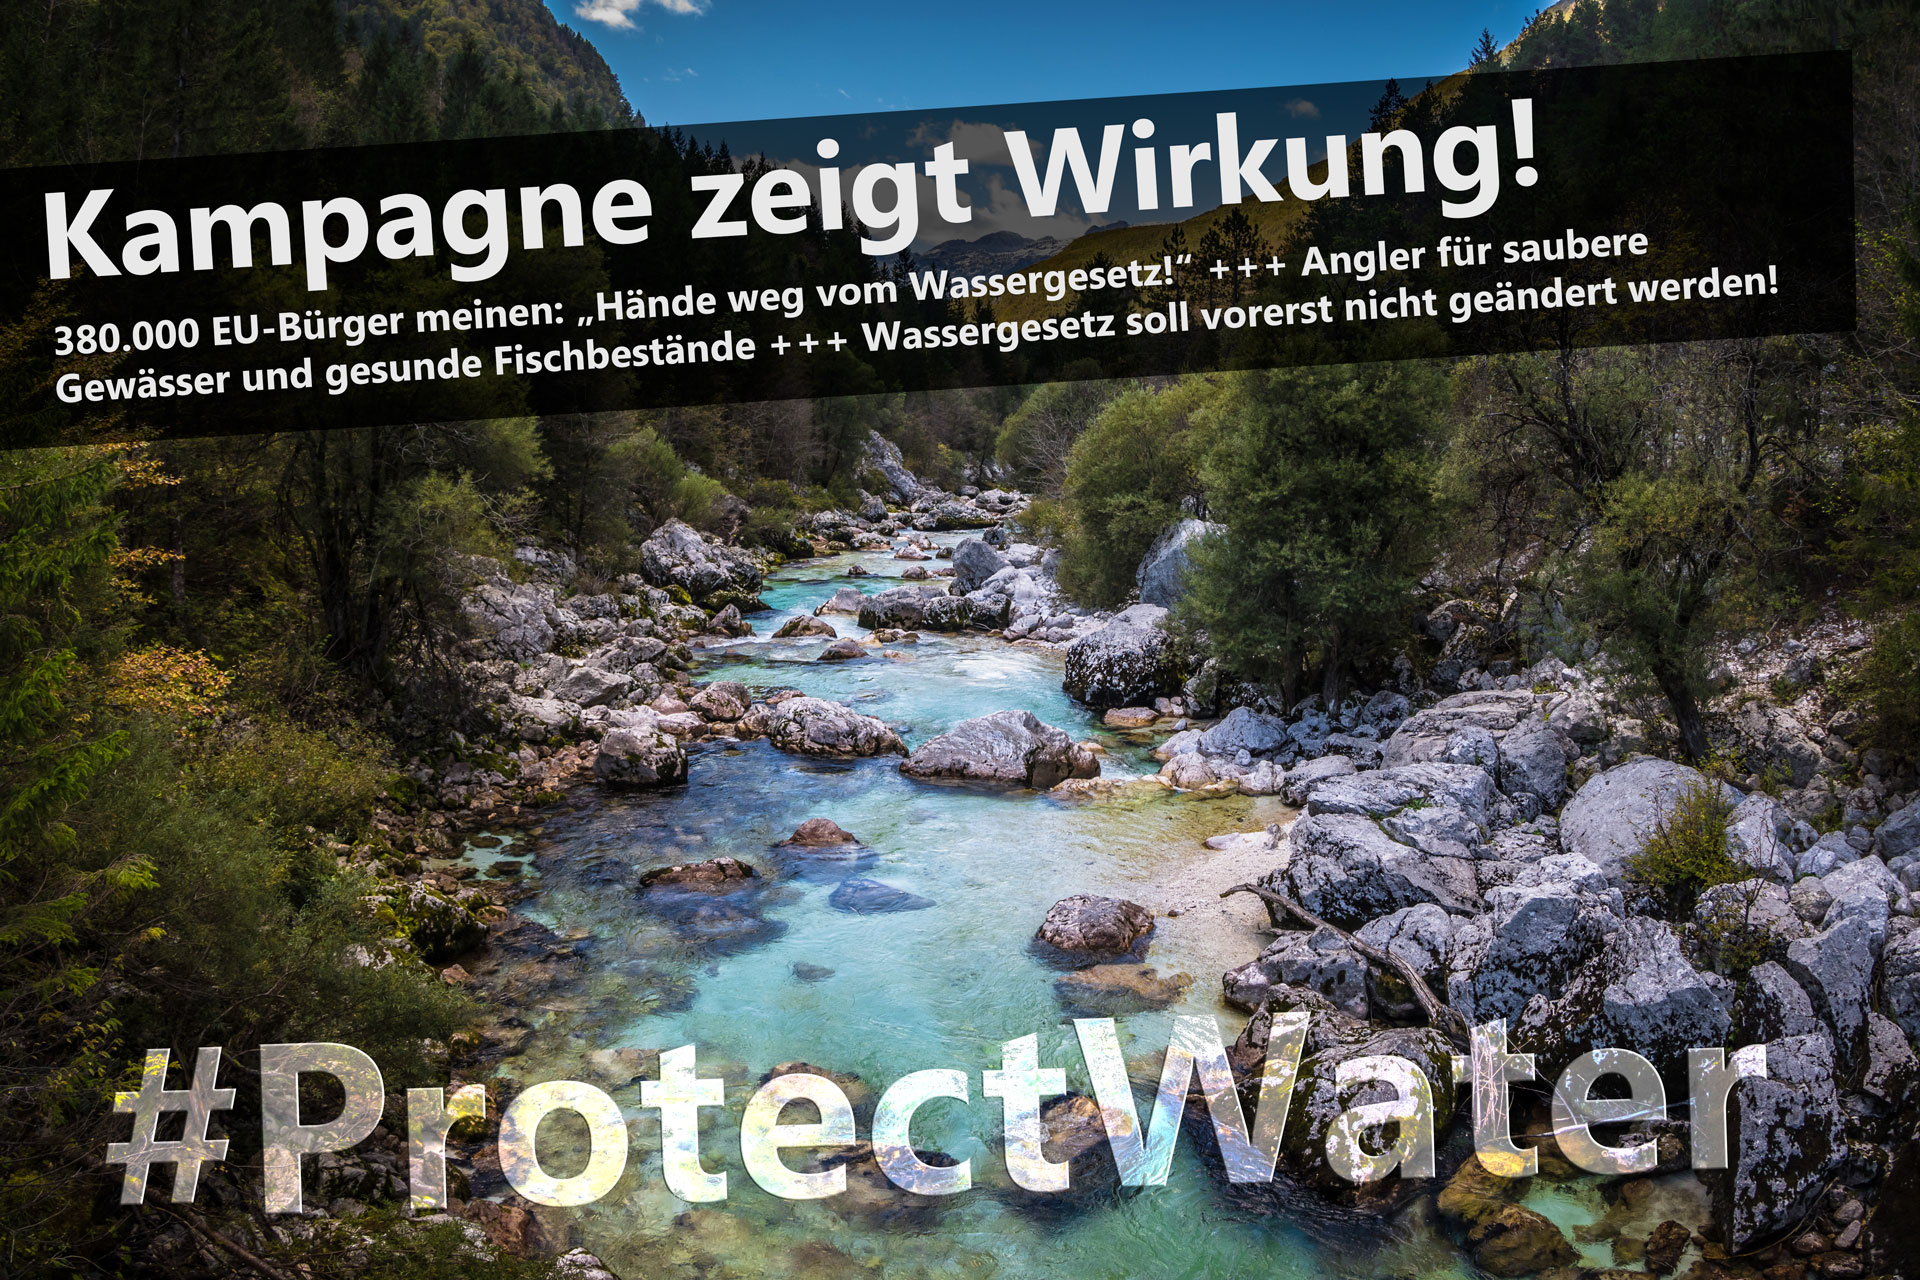 #protectwater_PM@1920px.jpg